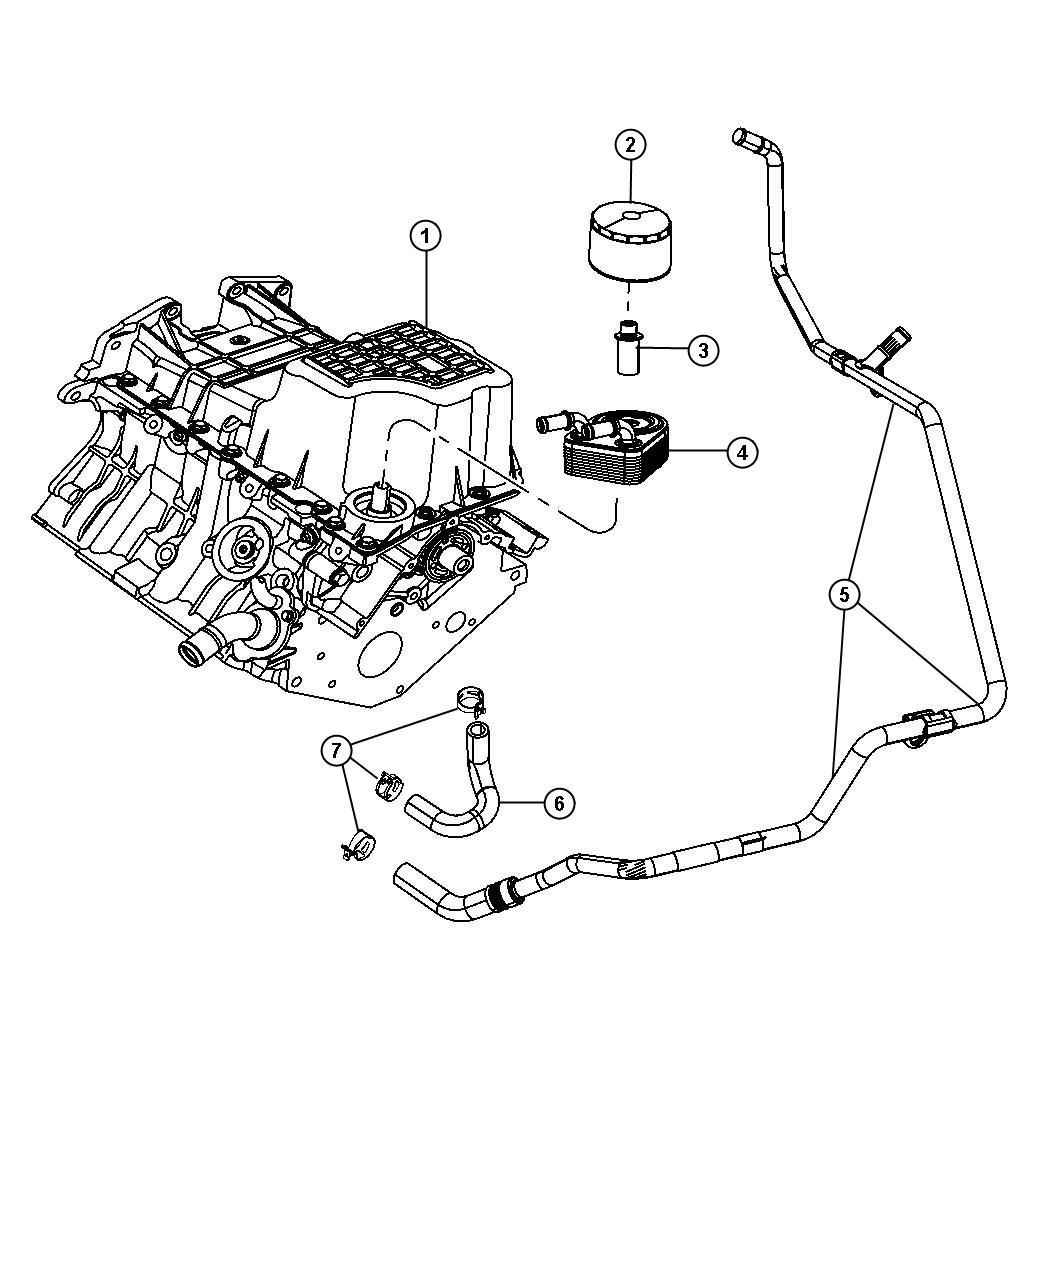 Chrysler Concorde Engine Diagram, Chrysler, Free Engine